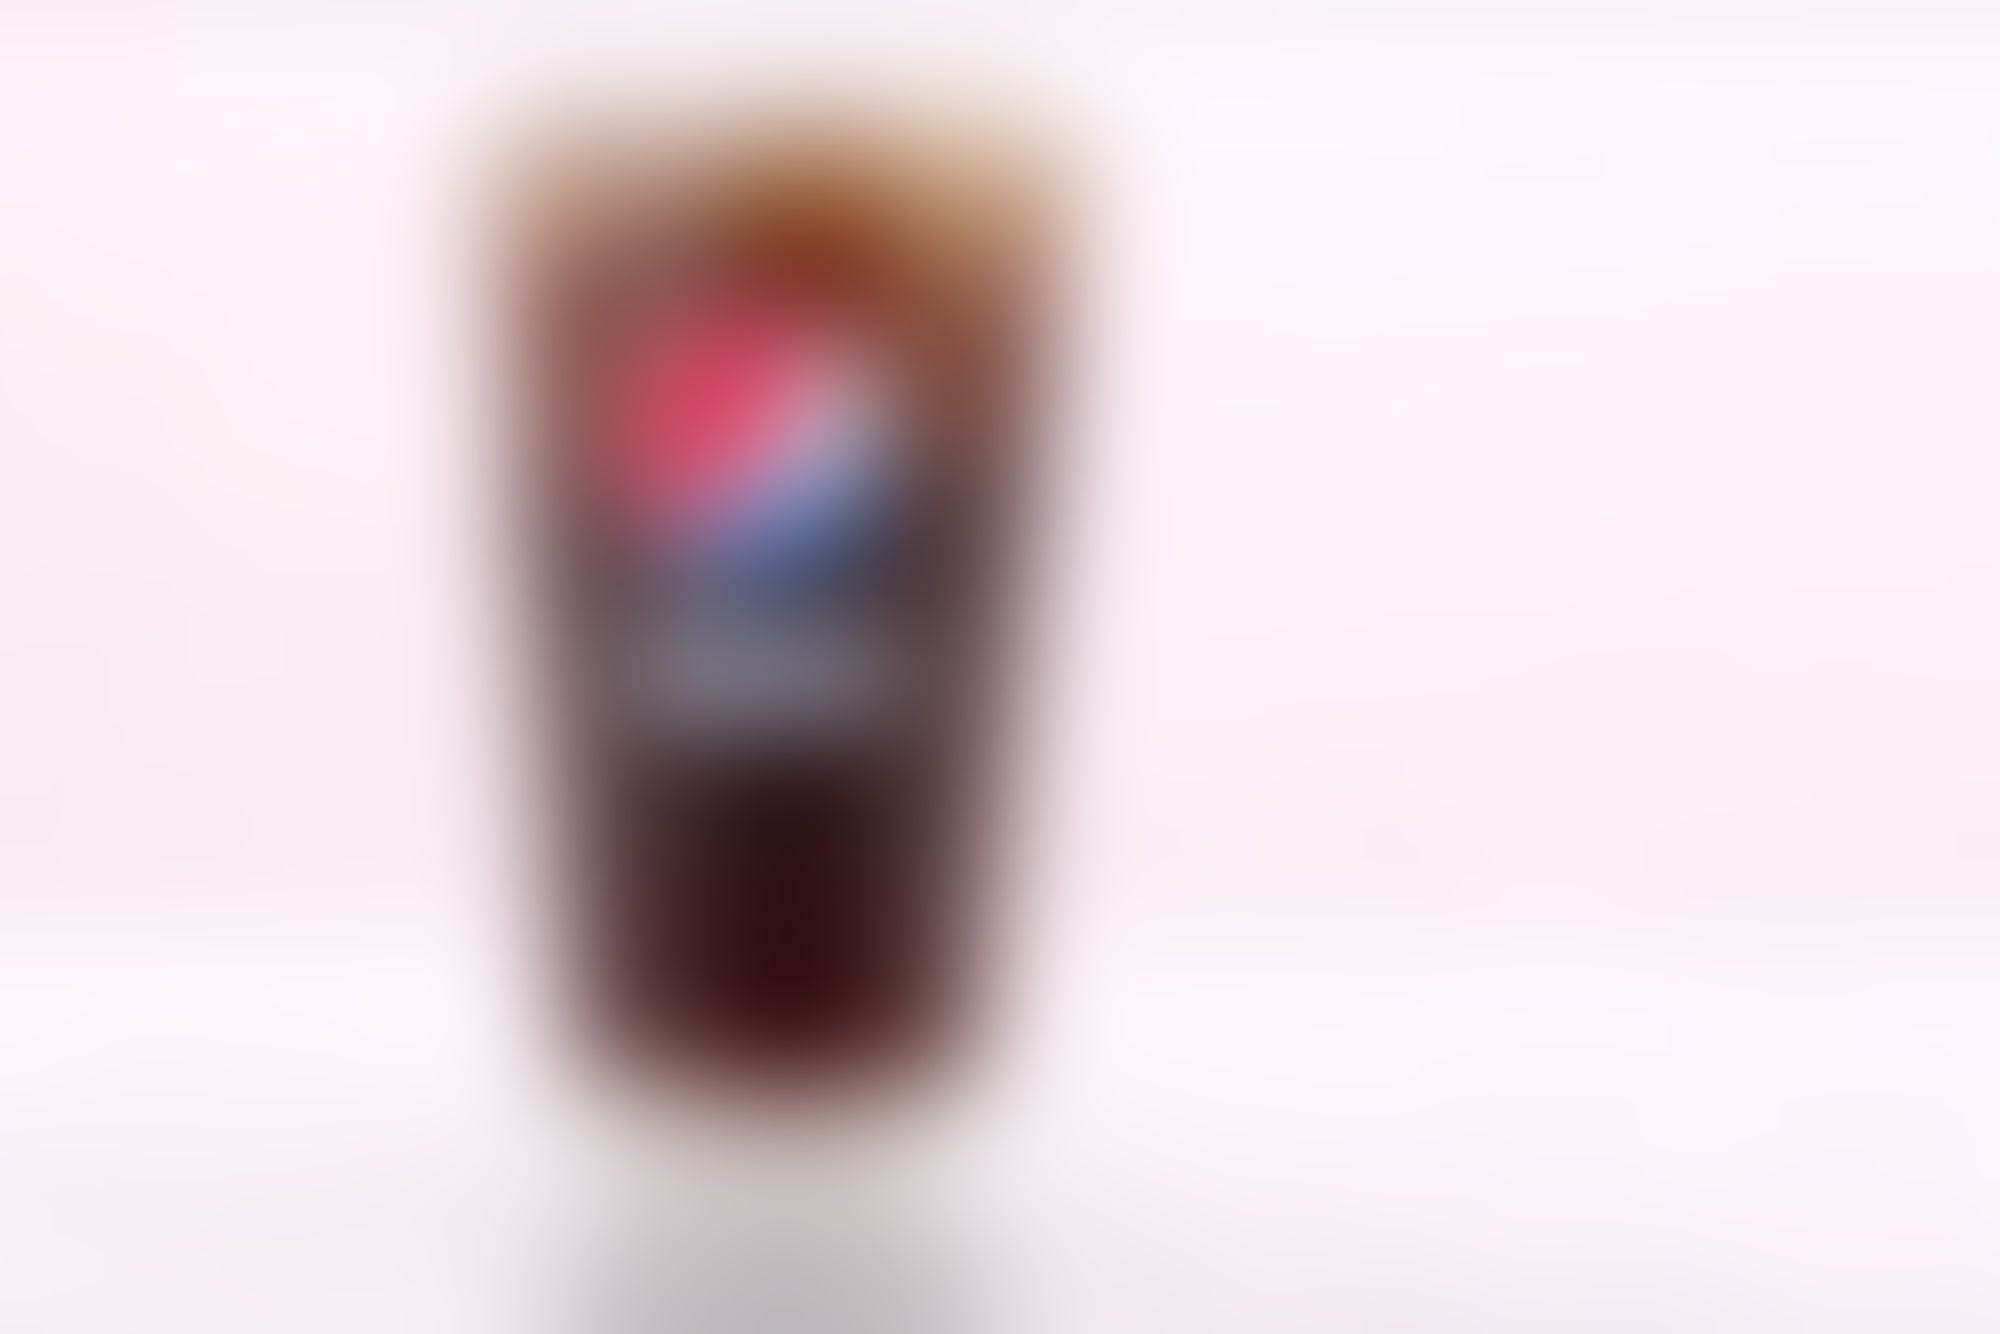 The Story of a Commercial, An Apology and a Glass of Pepsi